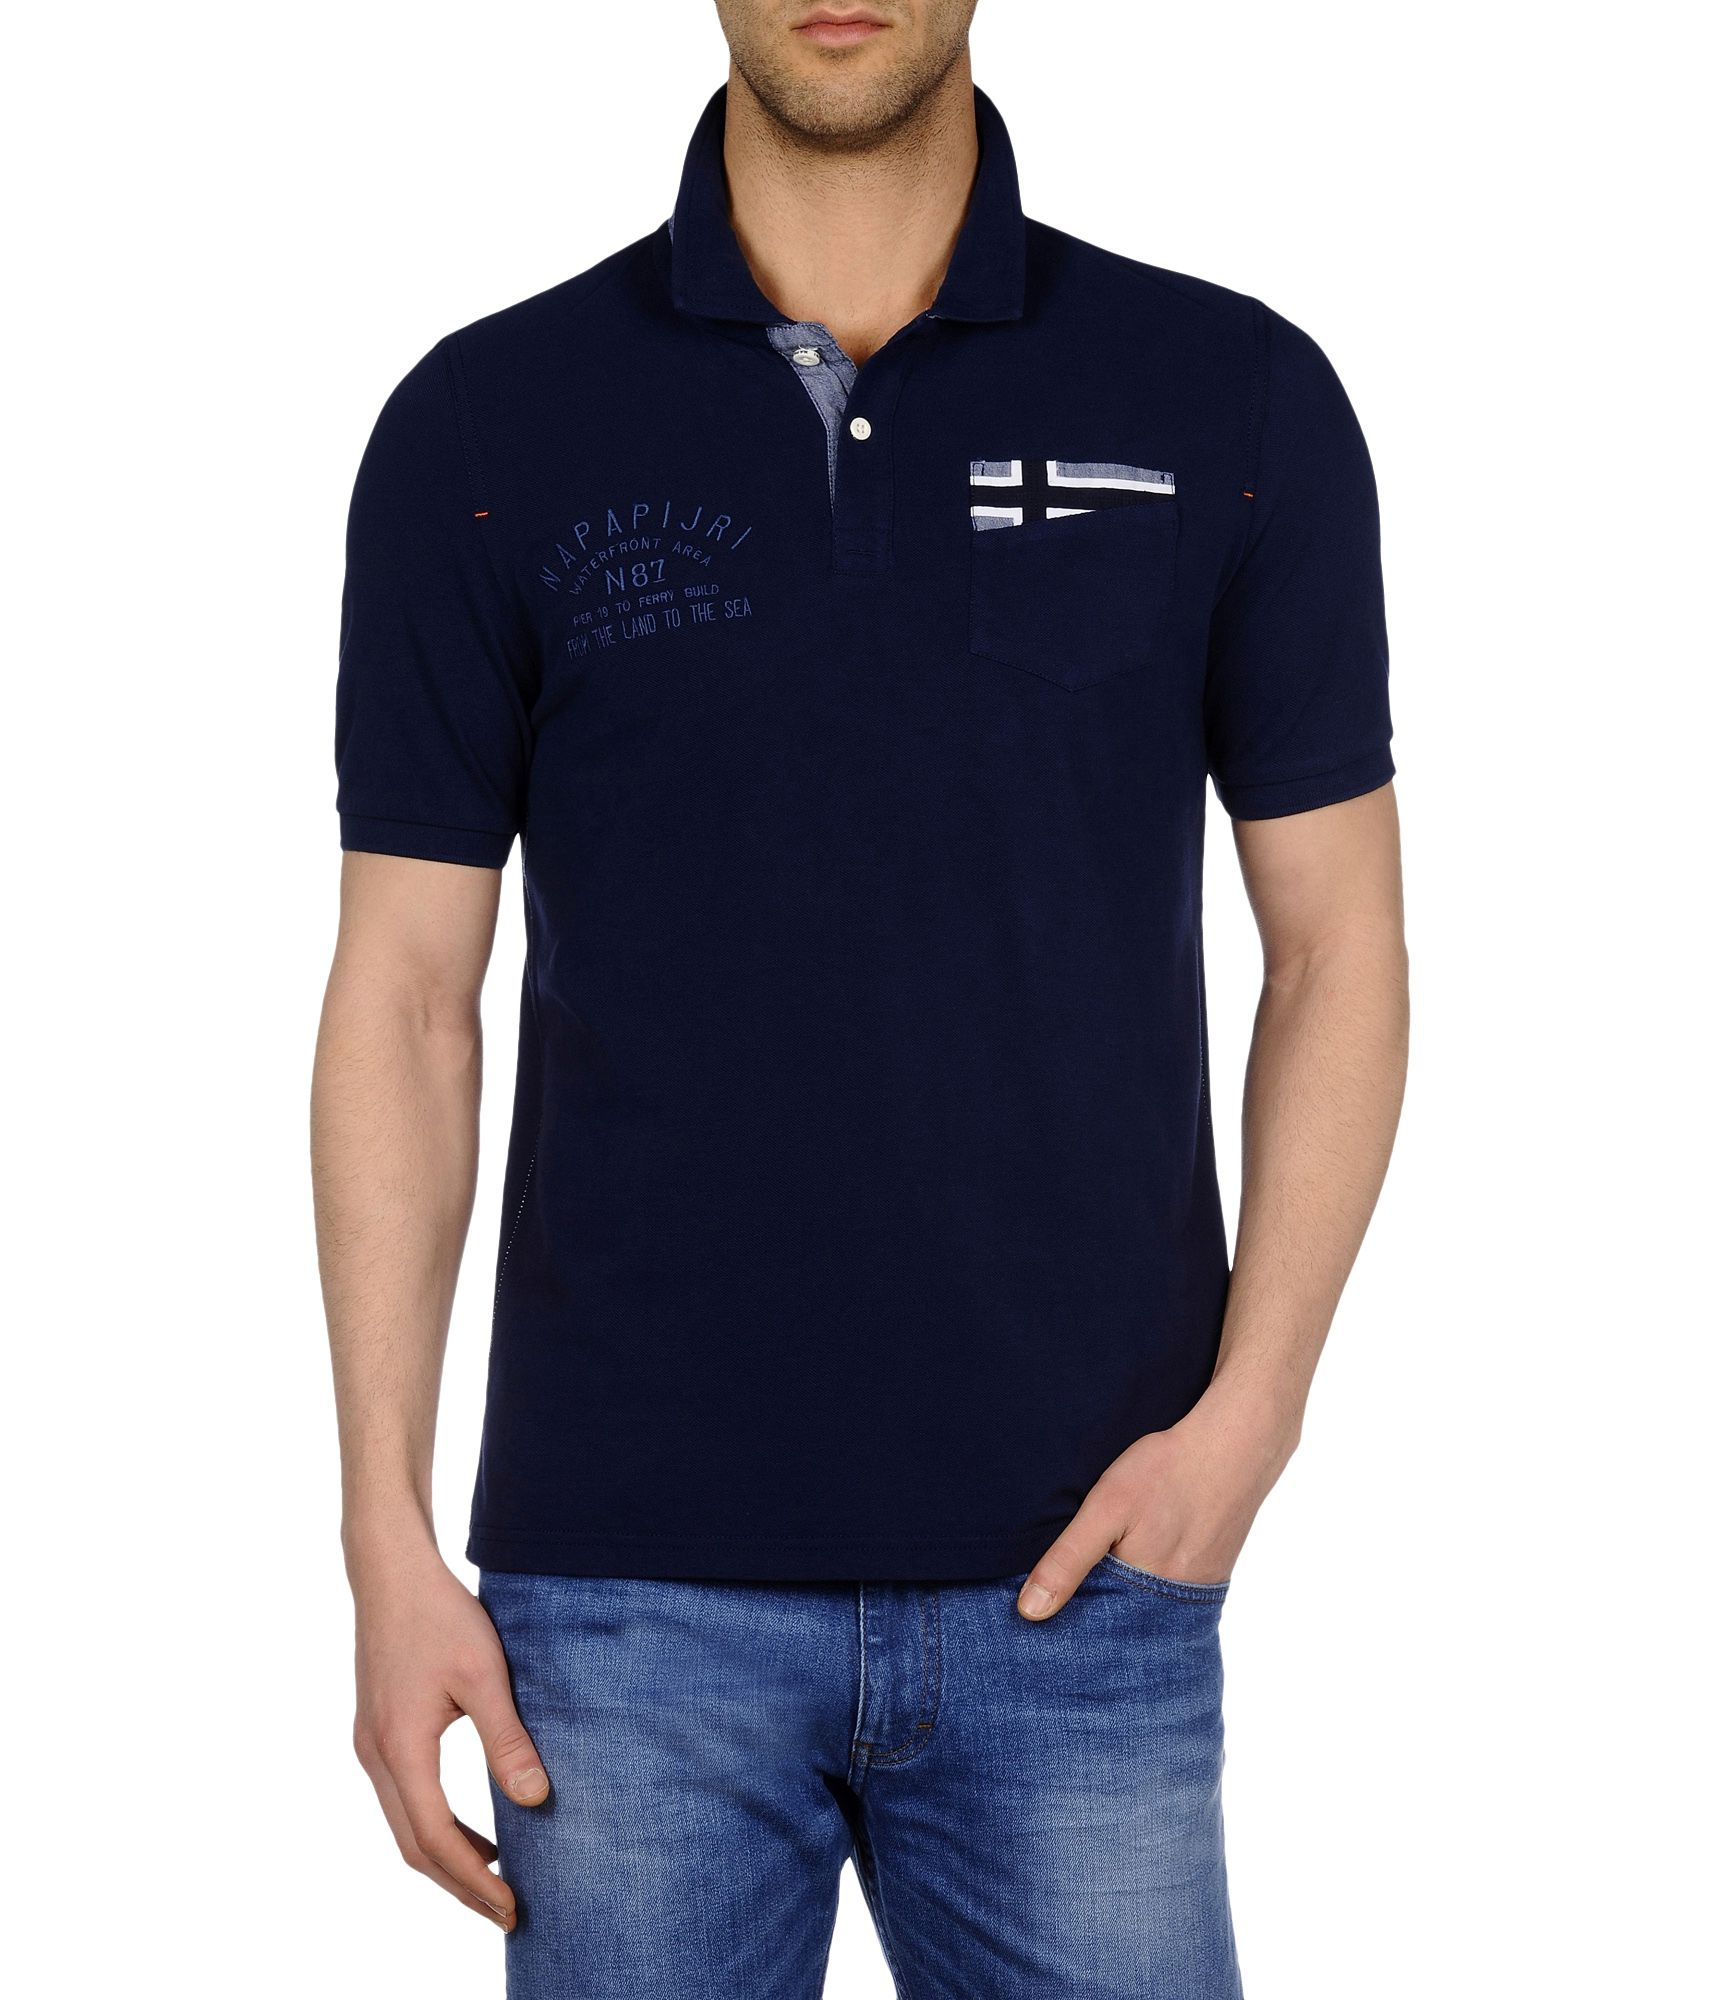 Napapijri polo shirt in blue for men dark blue lyst Man in polo shirt